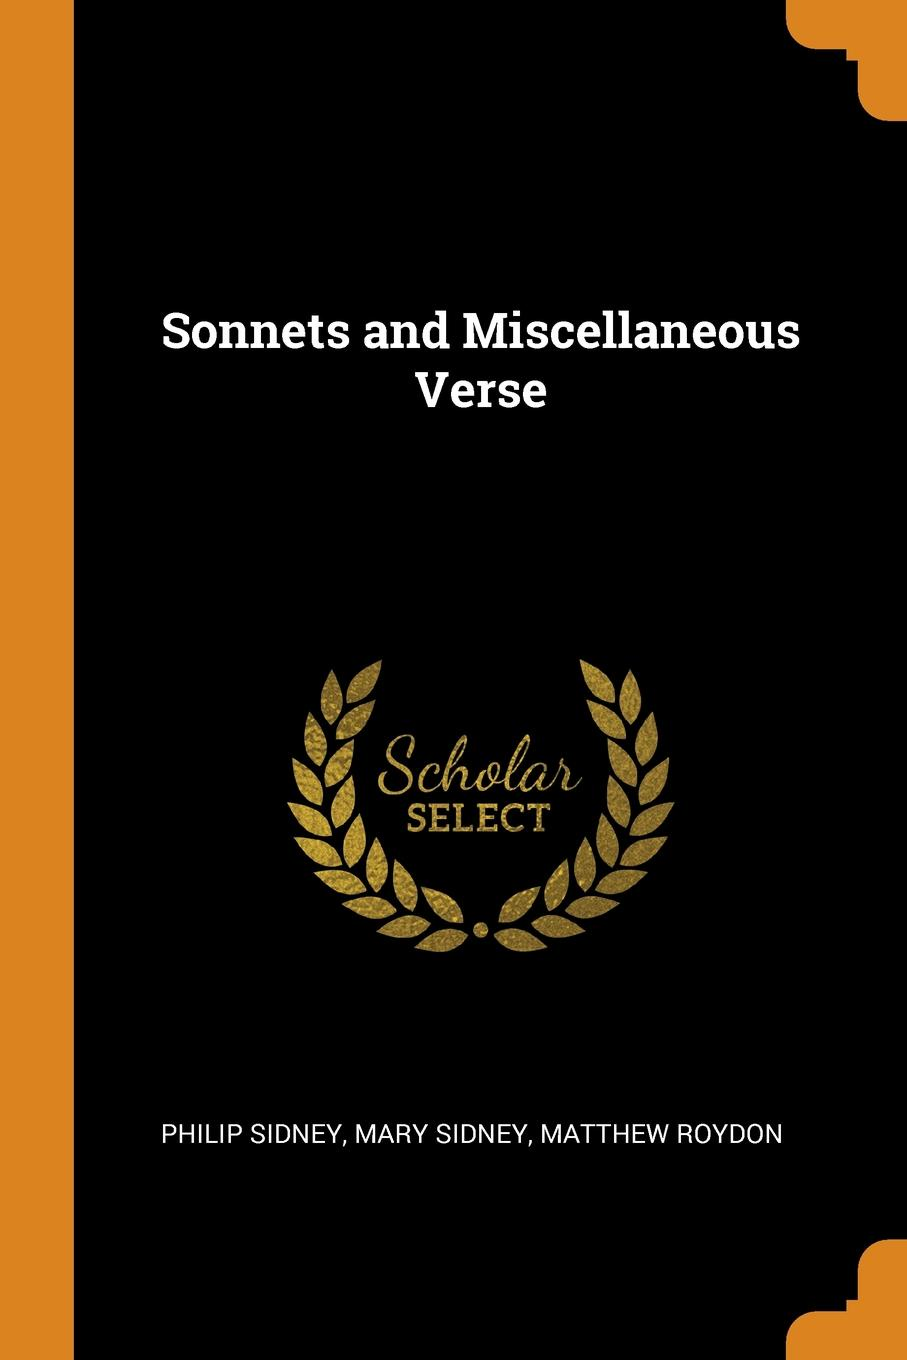 Philip Sidney, Mary Sidney, Matthew Roydon Sonnets and Miscellaneous Verse